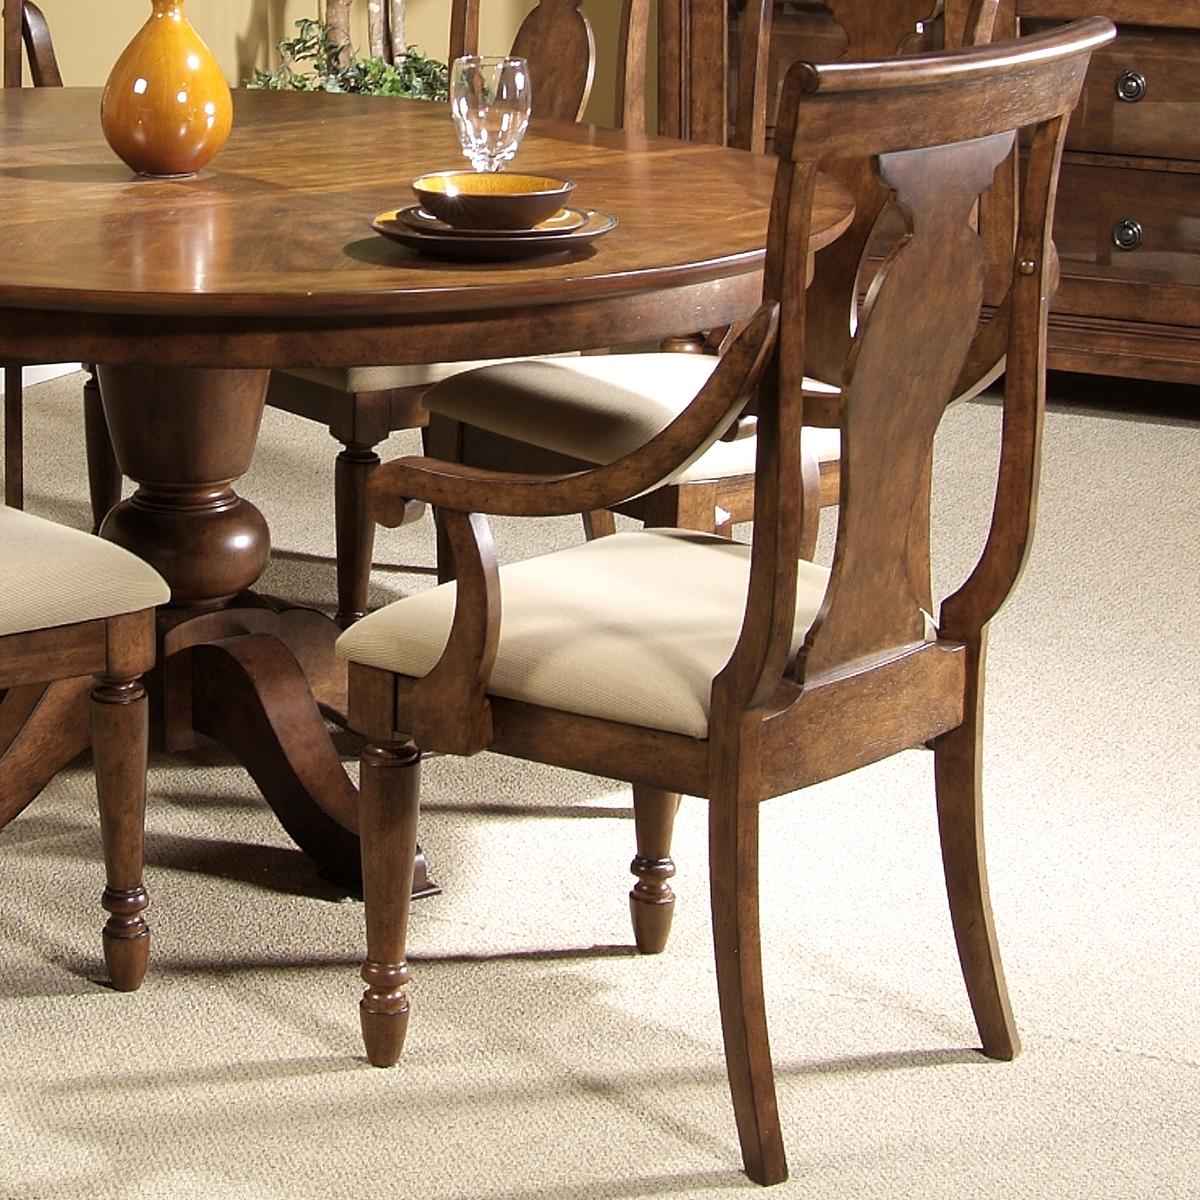 Rustic Traditions Splat Back Arm Chair by Liberty Furniture at Lapeer Furniture & Mattress Center